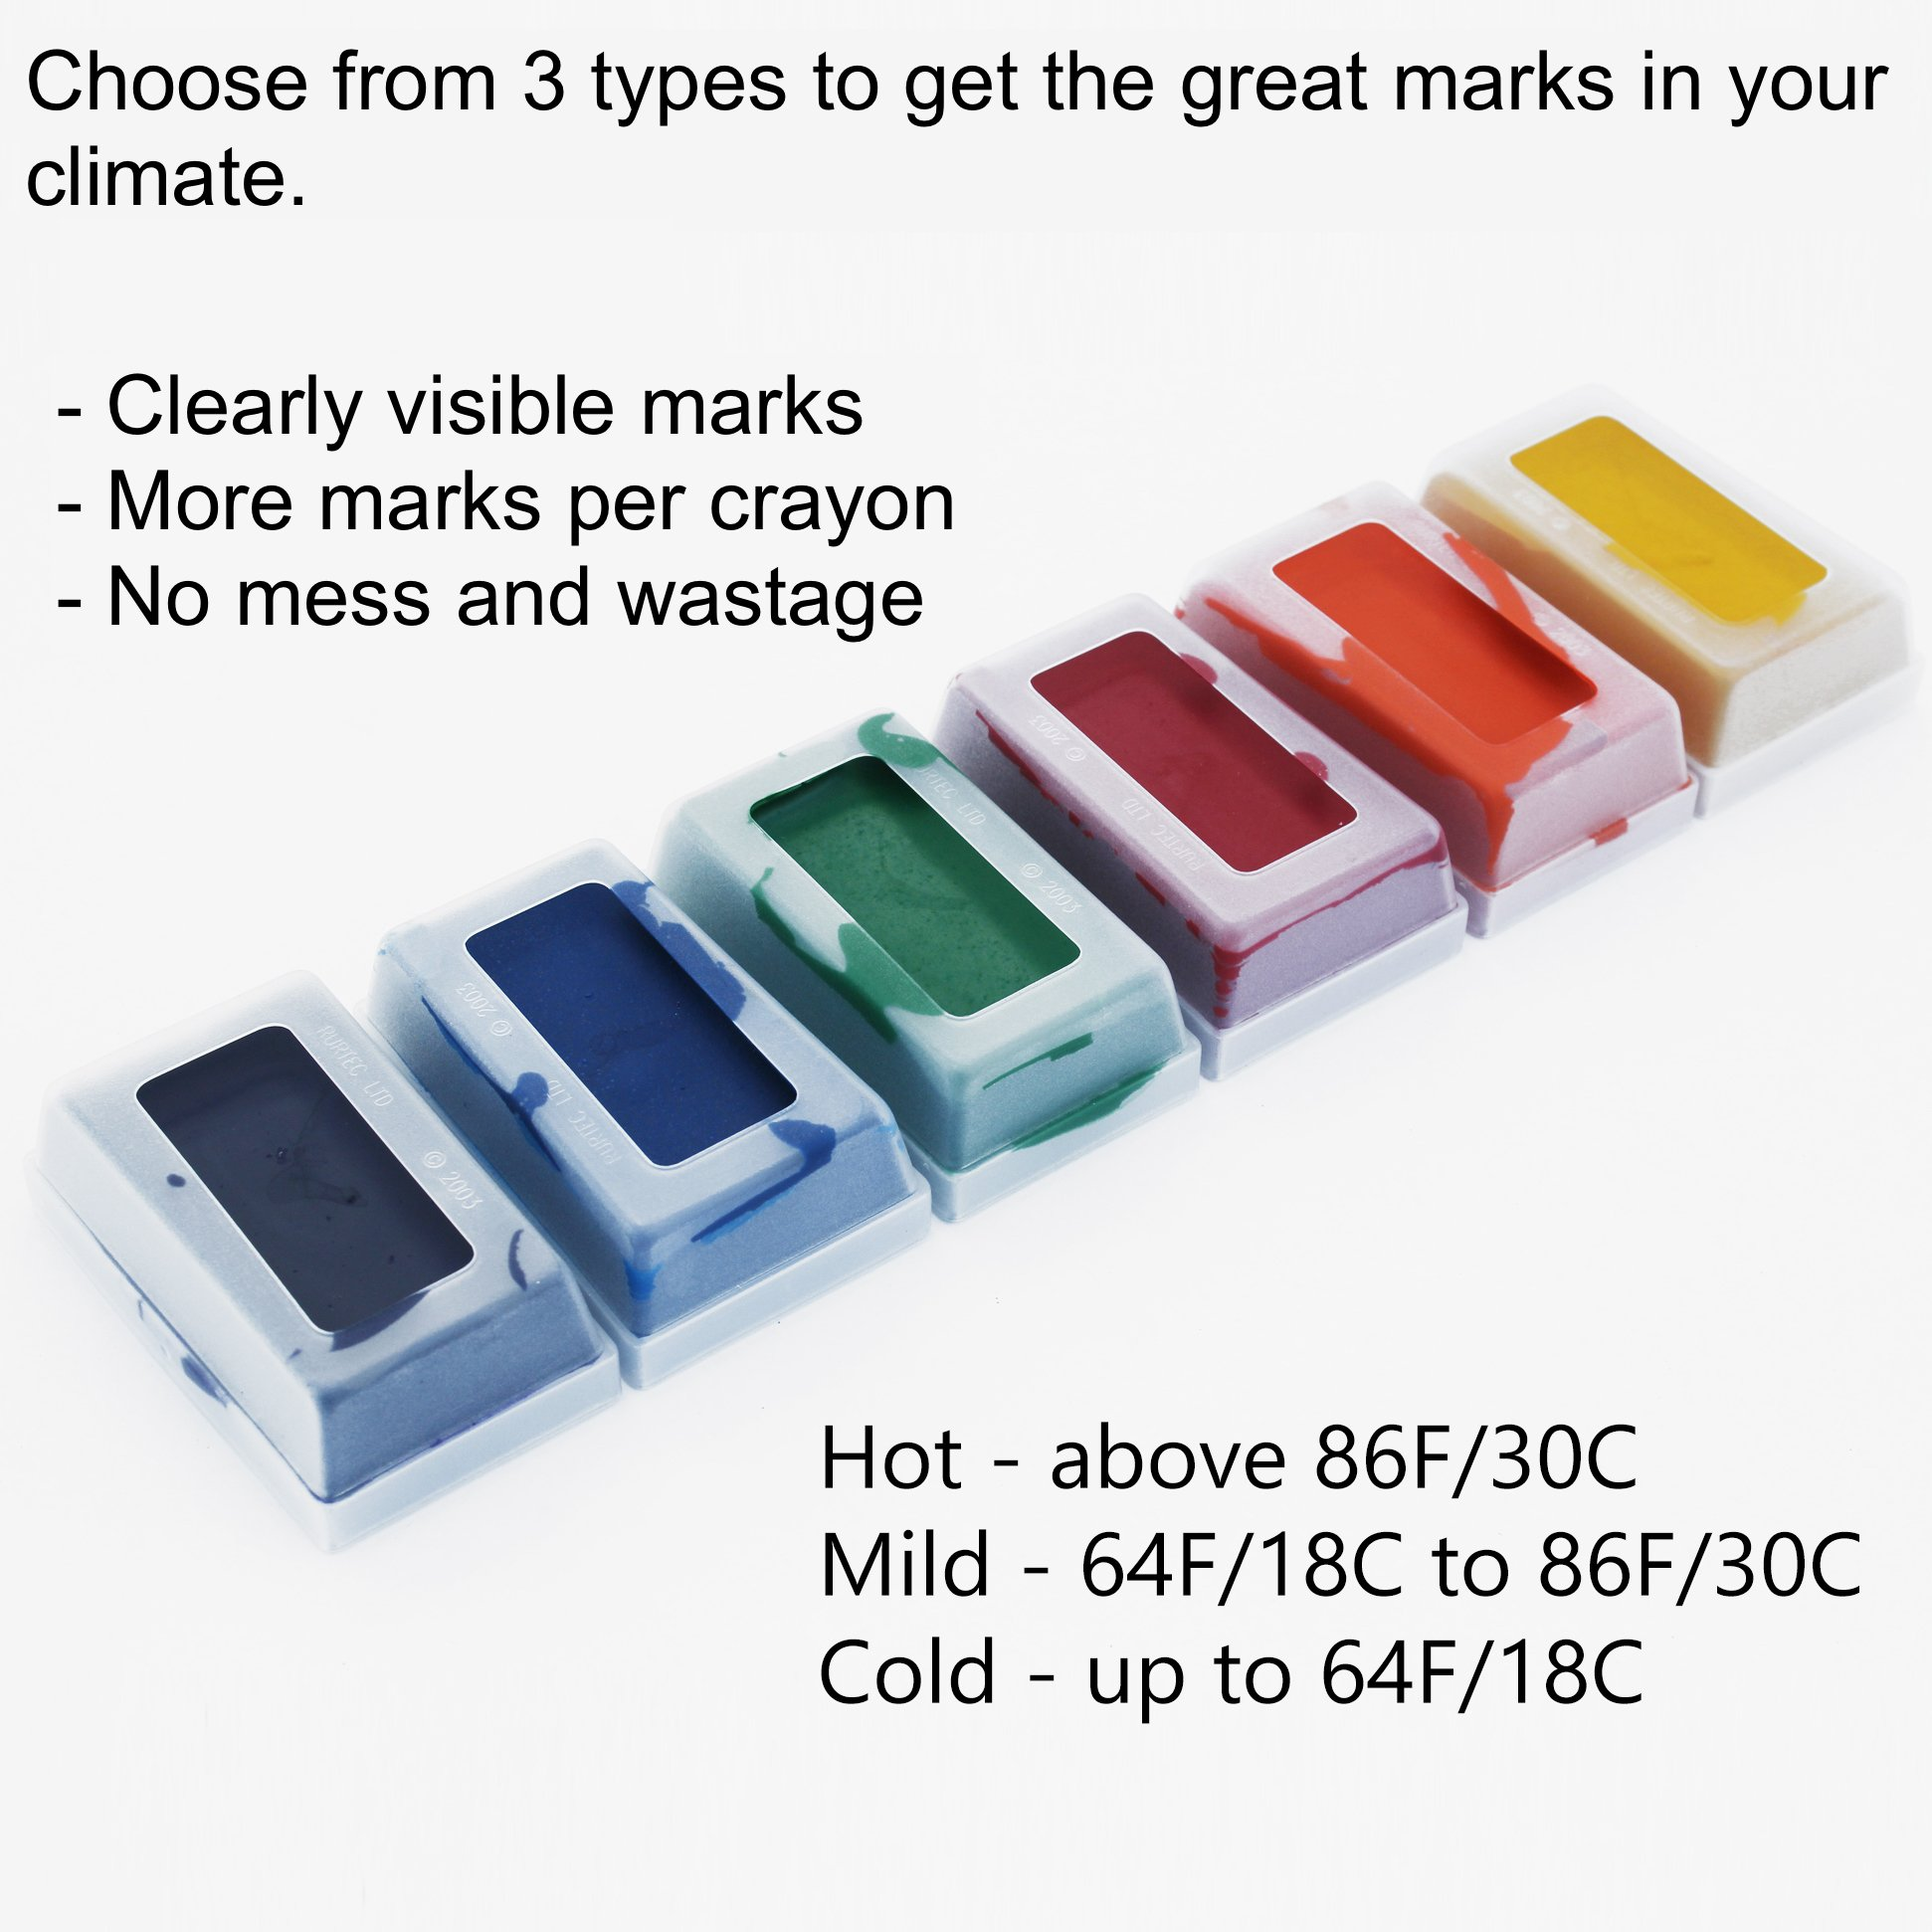 MATINGMARK Sheep & Goat Mating Crayon Block Marker for Ram Breeding/Marking Harness by Rurtec, 3 Pack (MILD Temperature) Made in New Zealand (Mild Yellow, Orange, Purple) by MATINGMARK (Image #1)